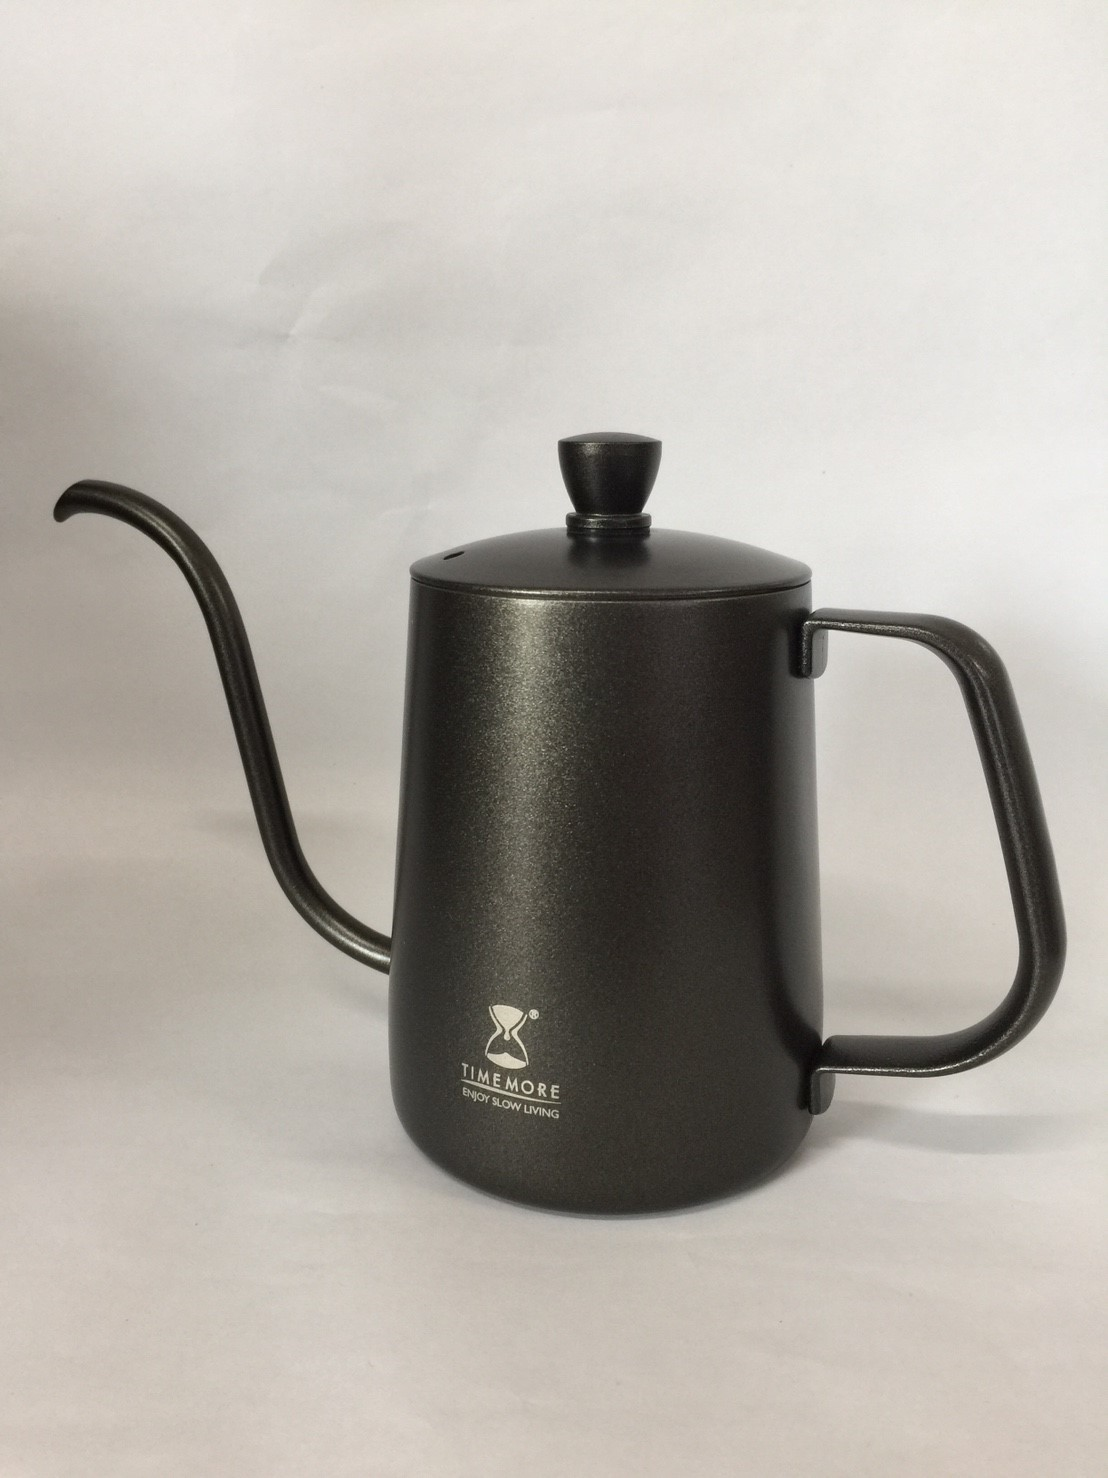 Time more Kettle 0.6 L